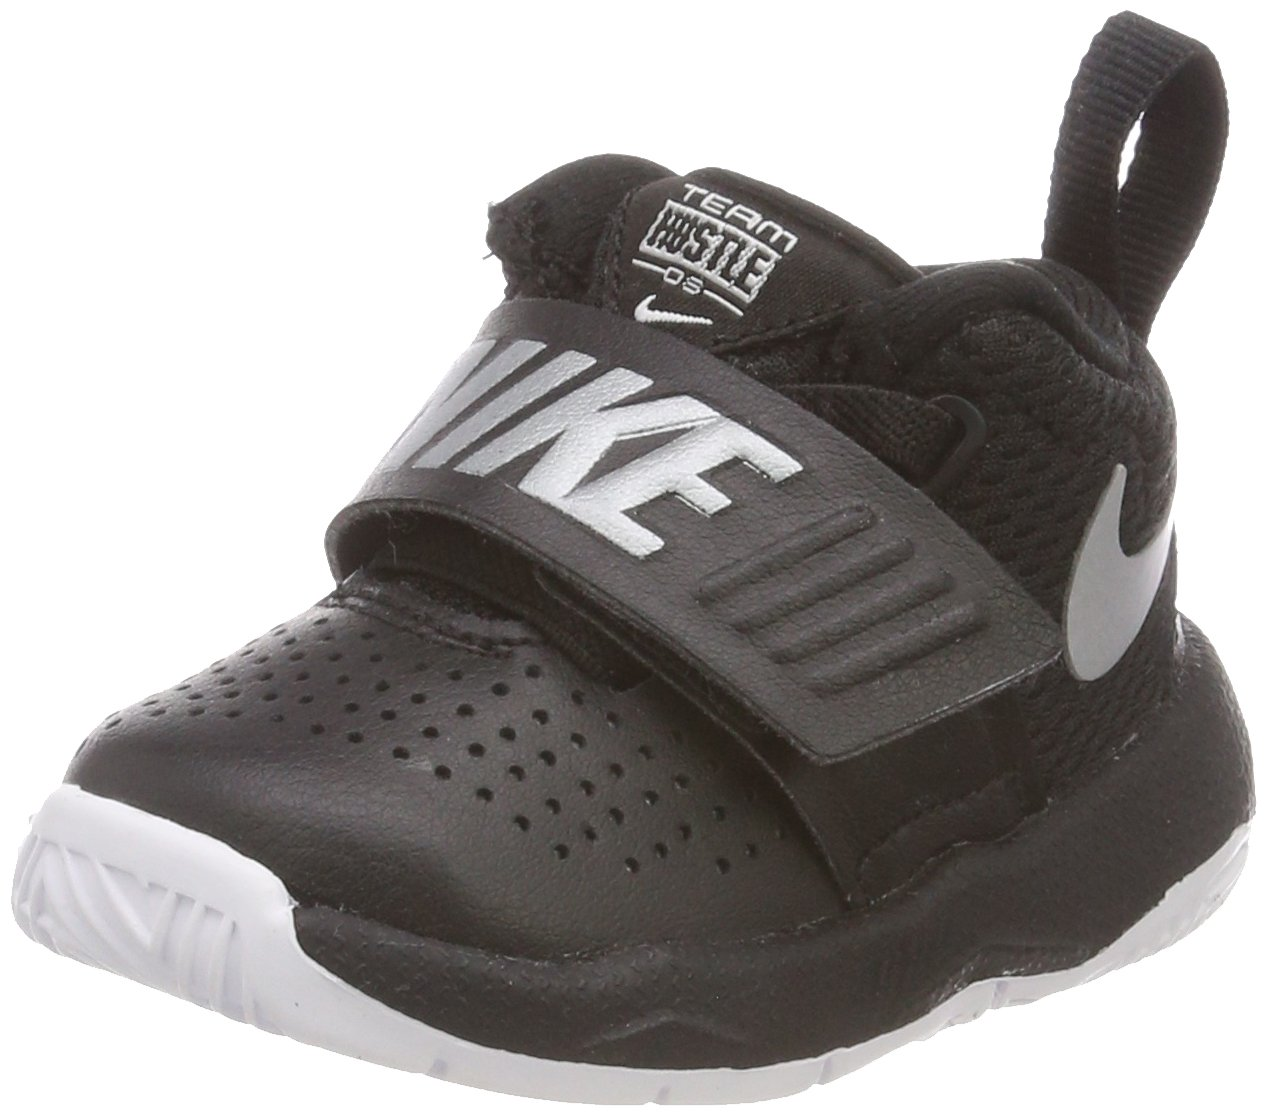 New Nike Baby Boy's Team Hustle D 8 Athletic Shoe Black/White 5